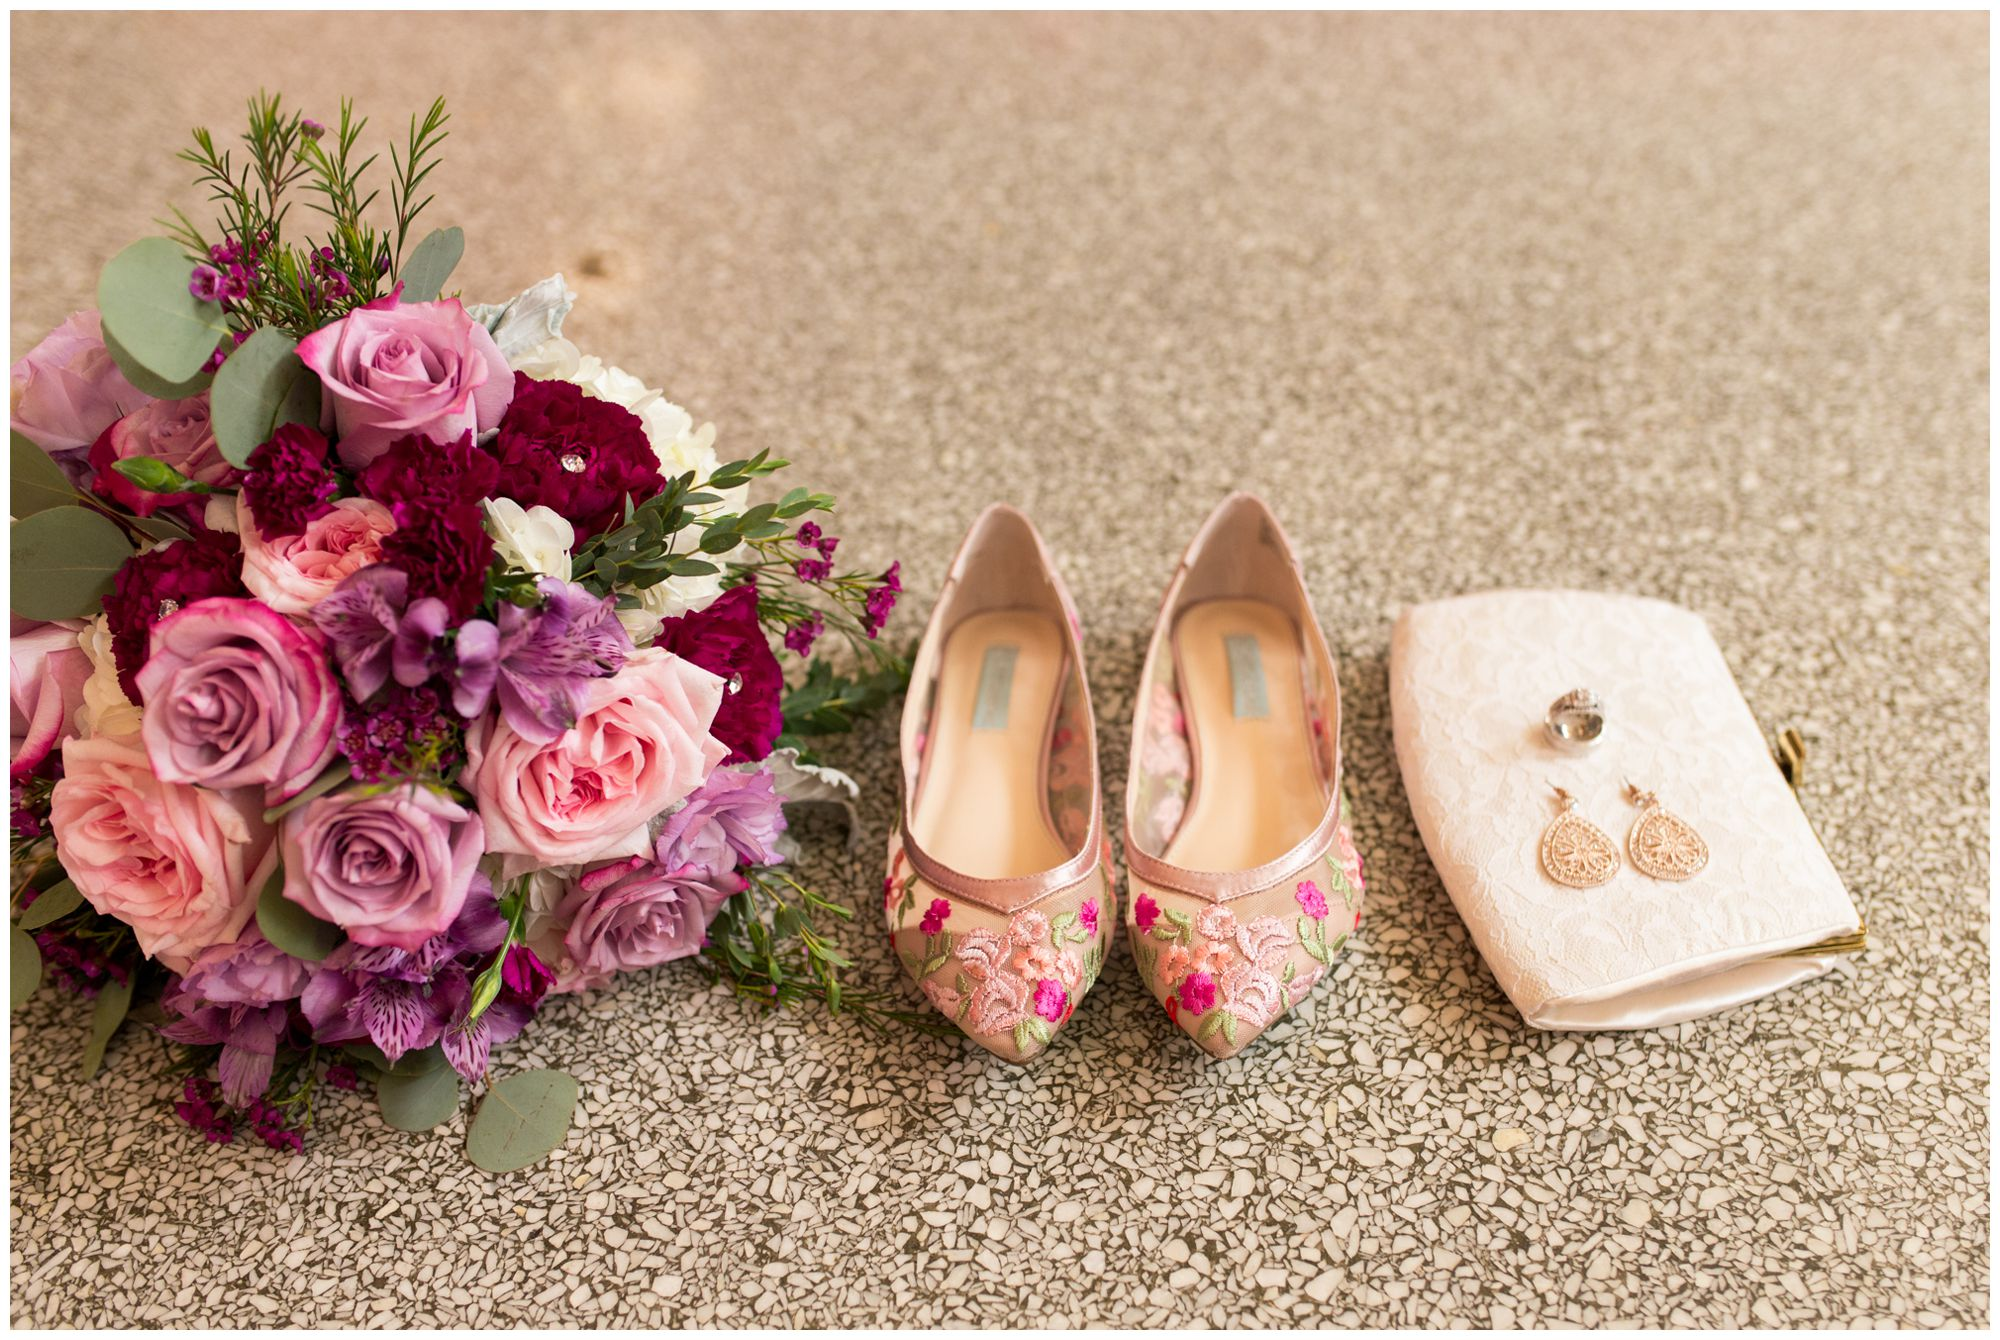 bridal details at Charley Creek Inn in Wabash Indiana